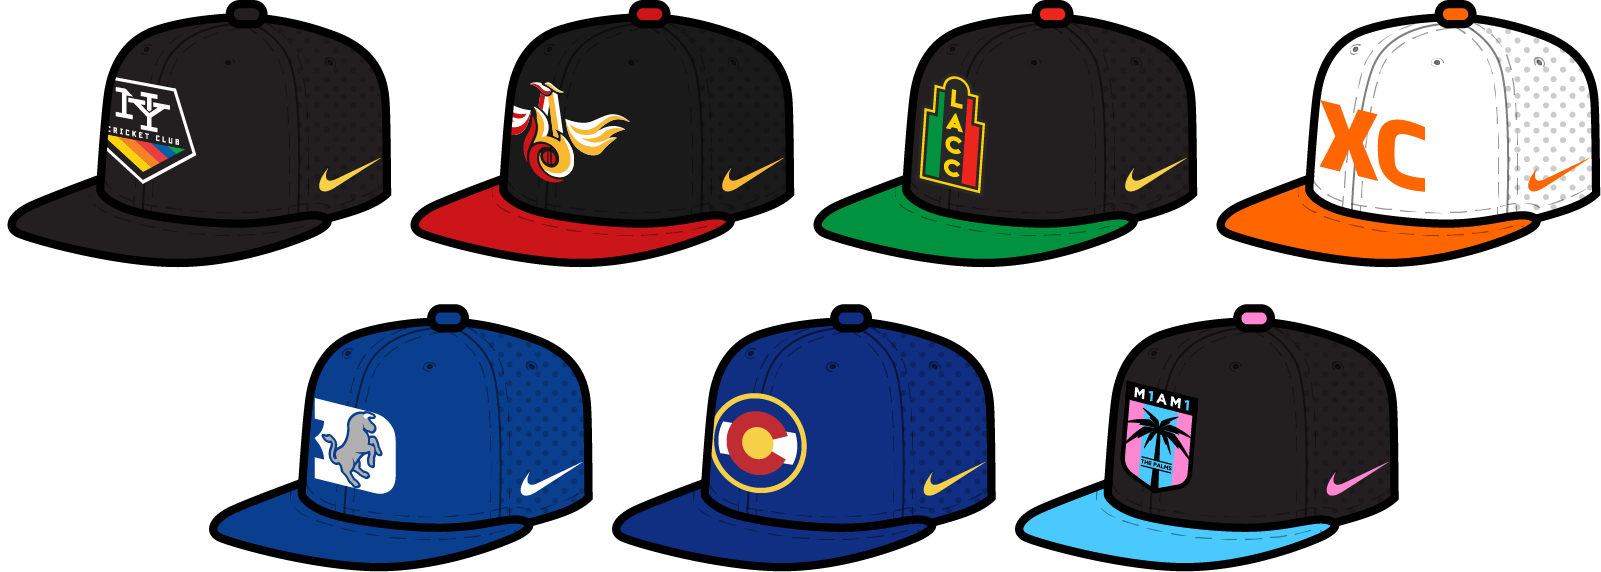 hats_01.png